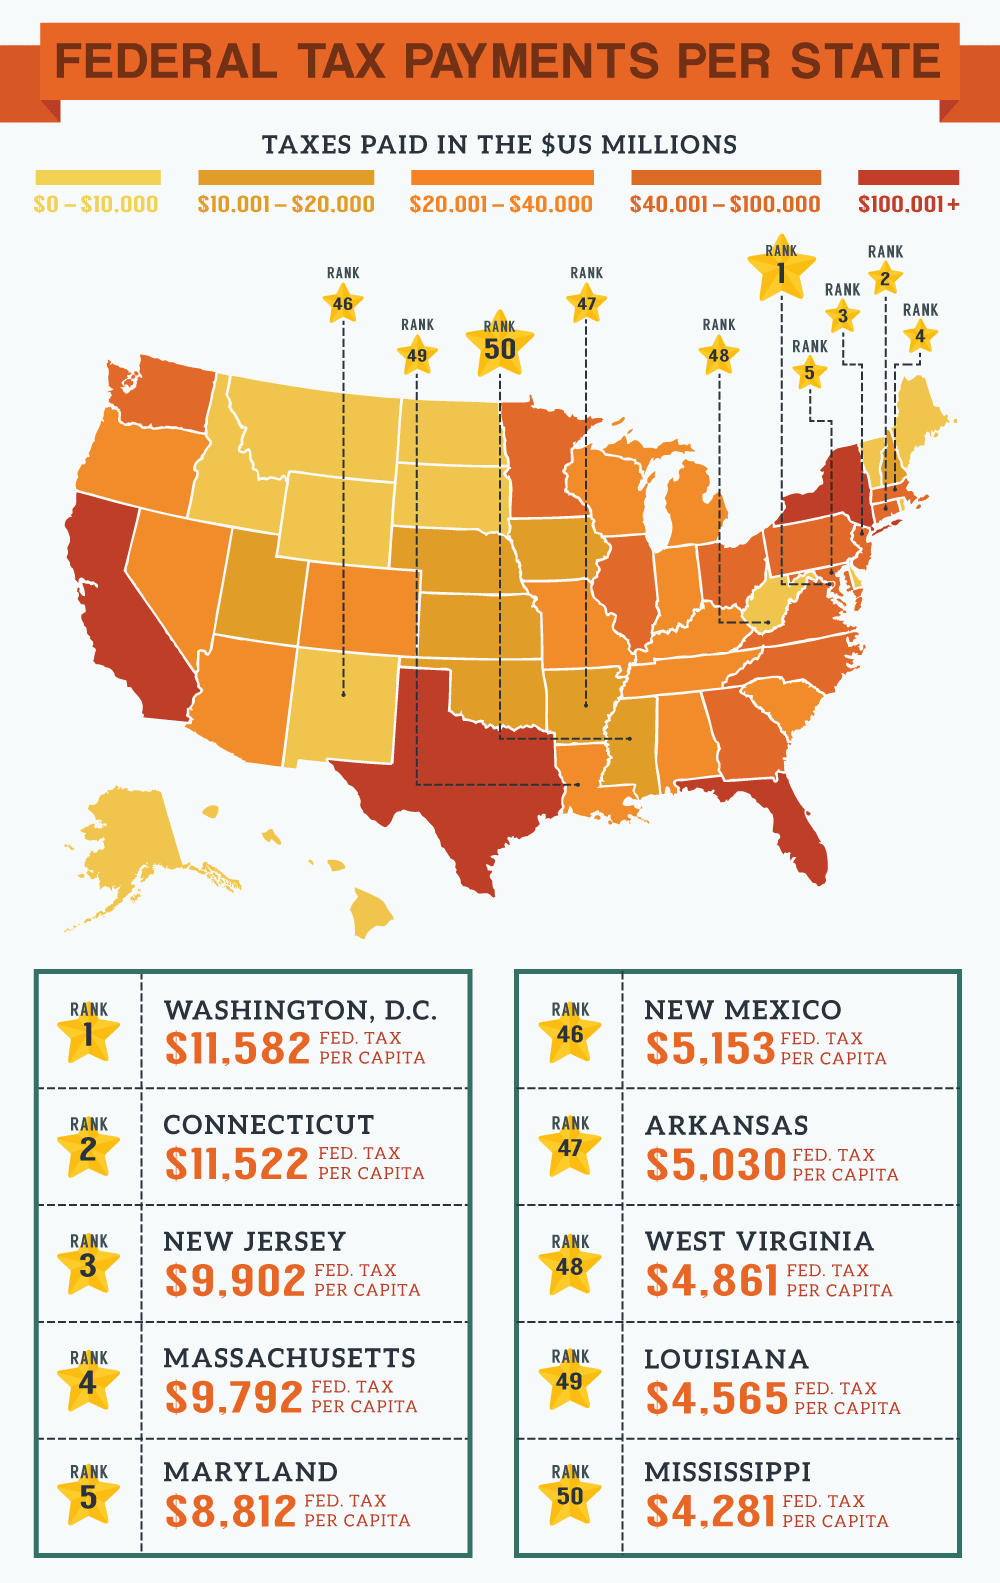 United States Federal Tax Dollars: Federal Tax Payments Per State